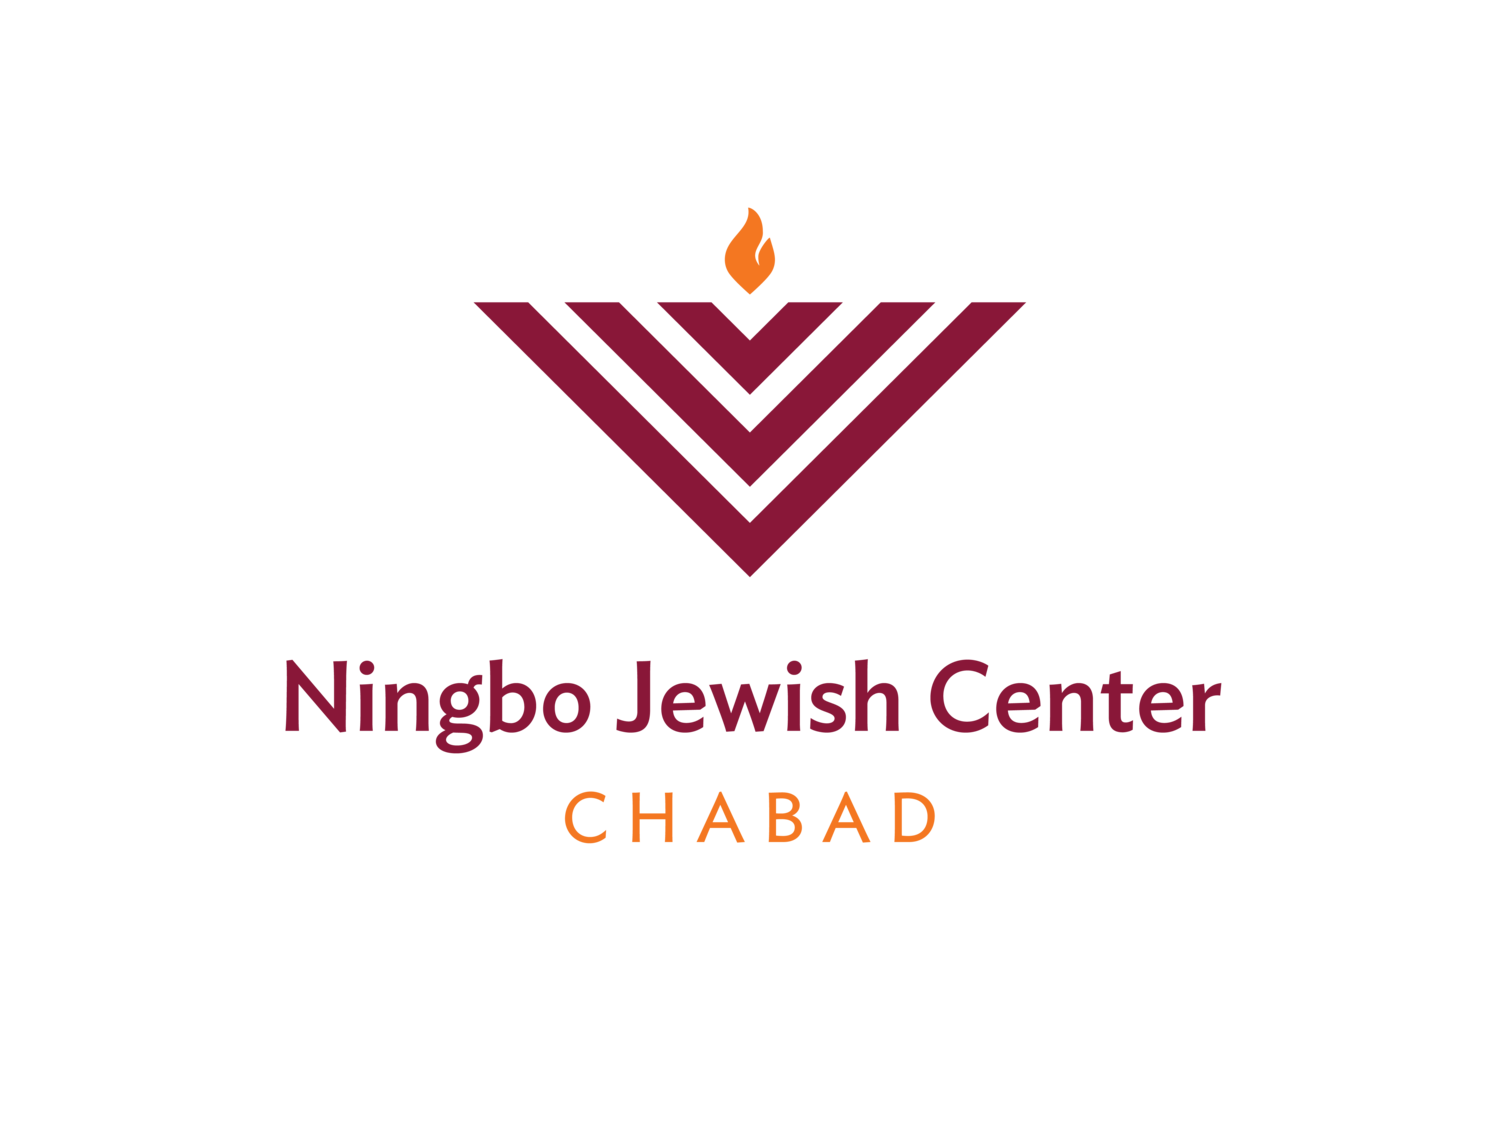 Ningbo Jewish Center - Chabad